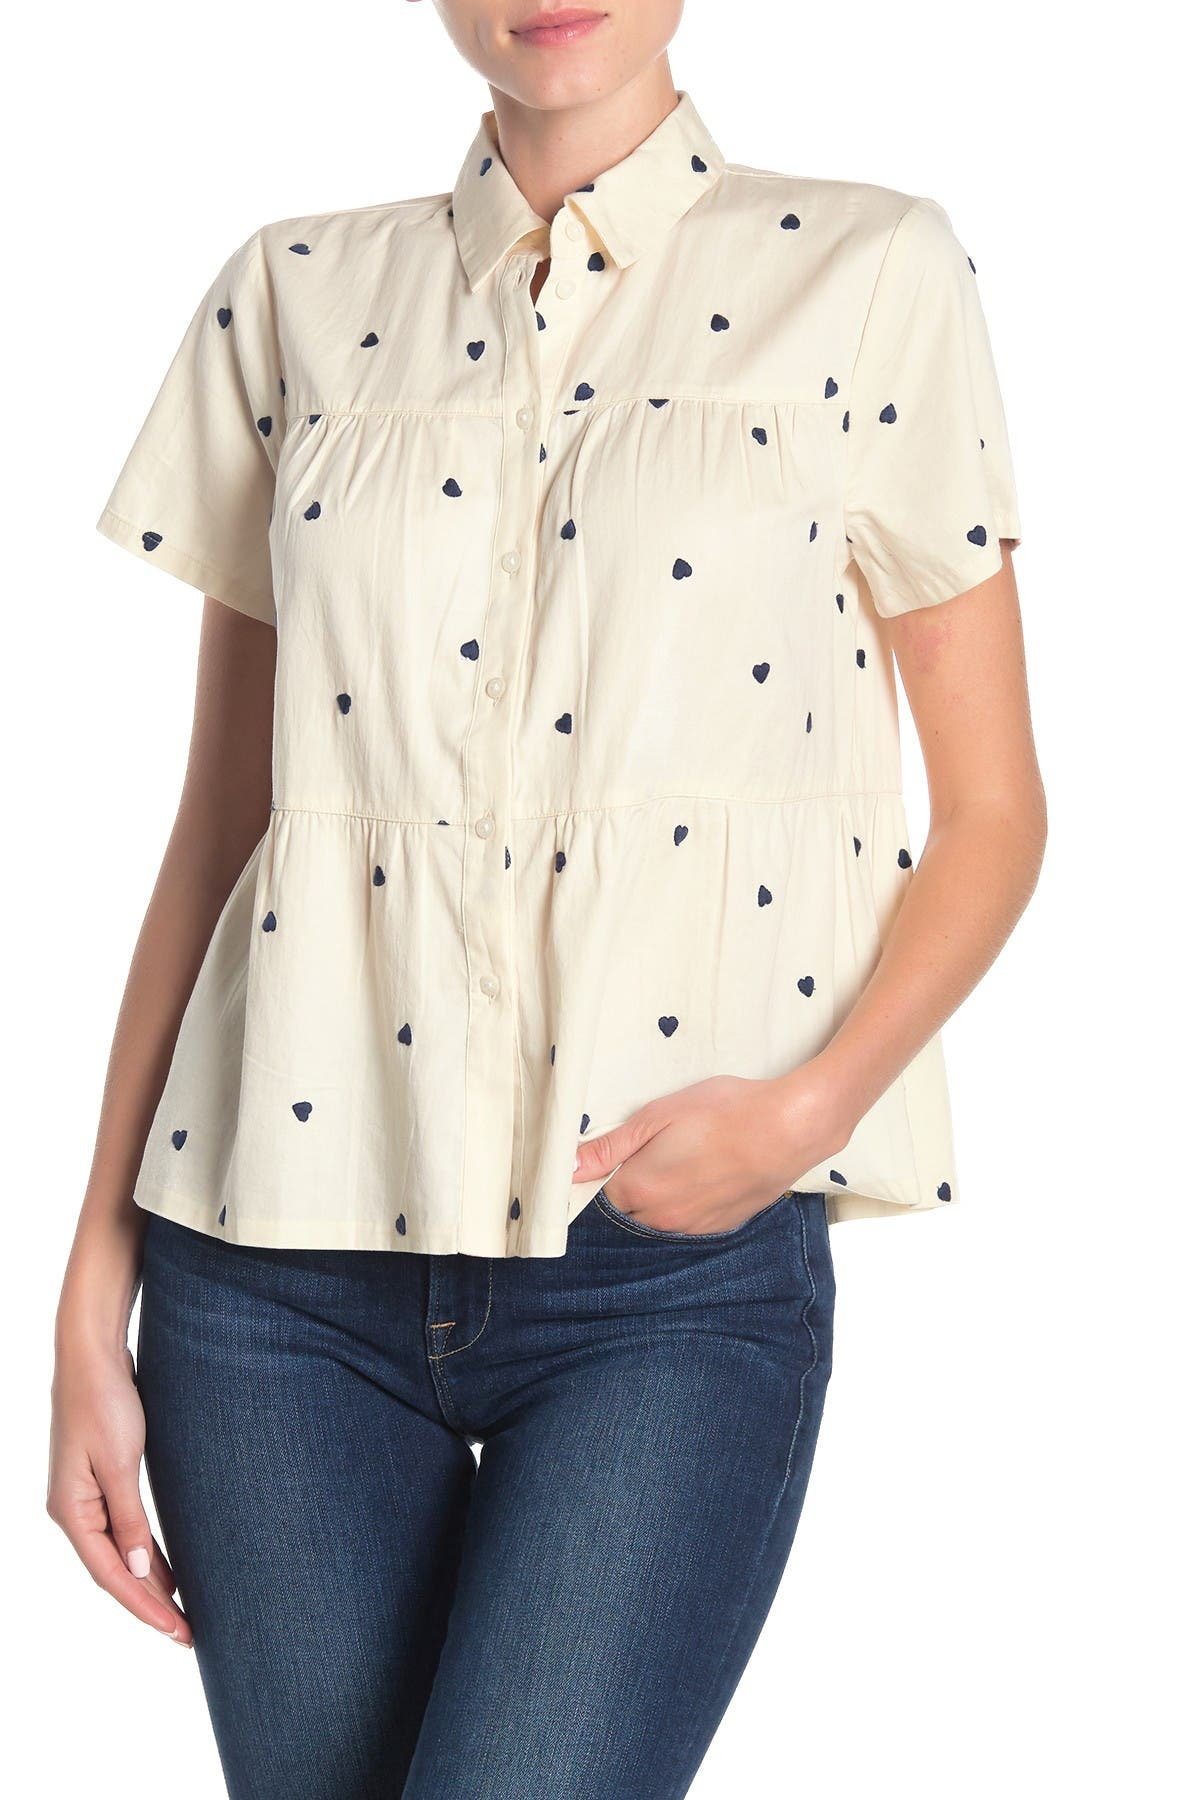 Image of Madewell Heart Embroidered Button Front Peplum Shirt